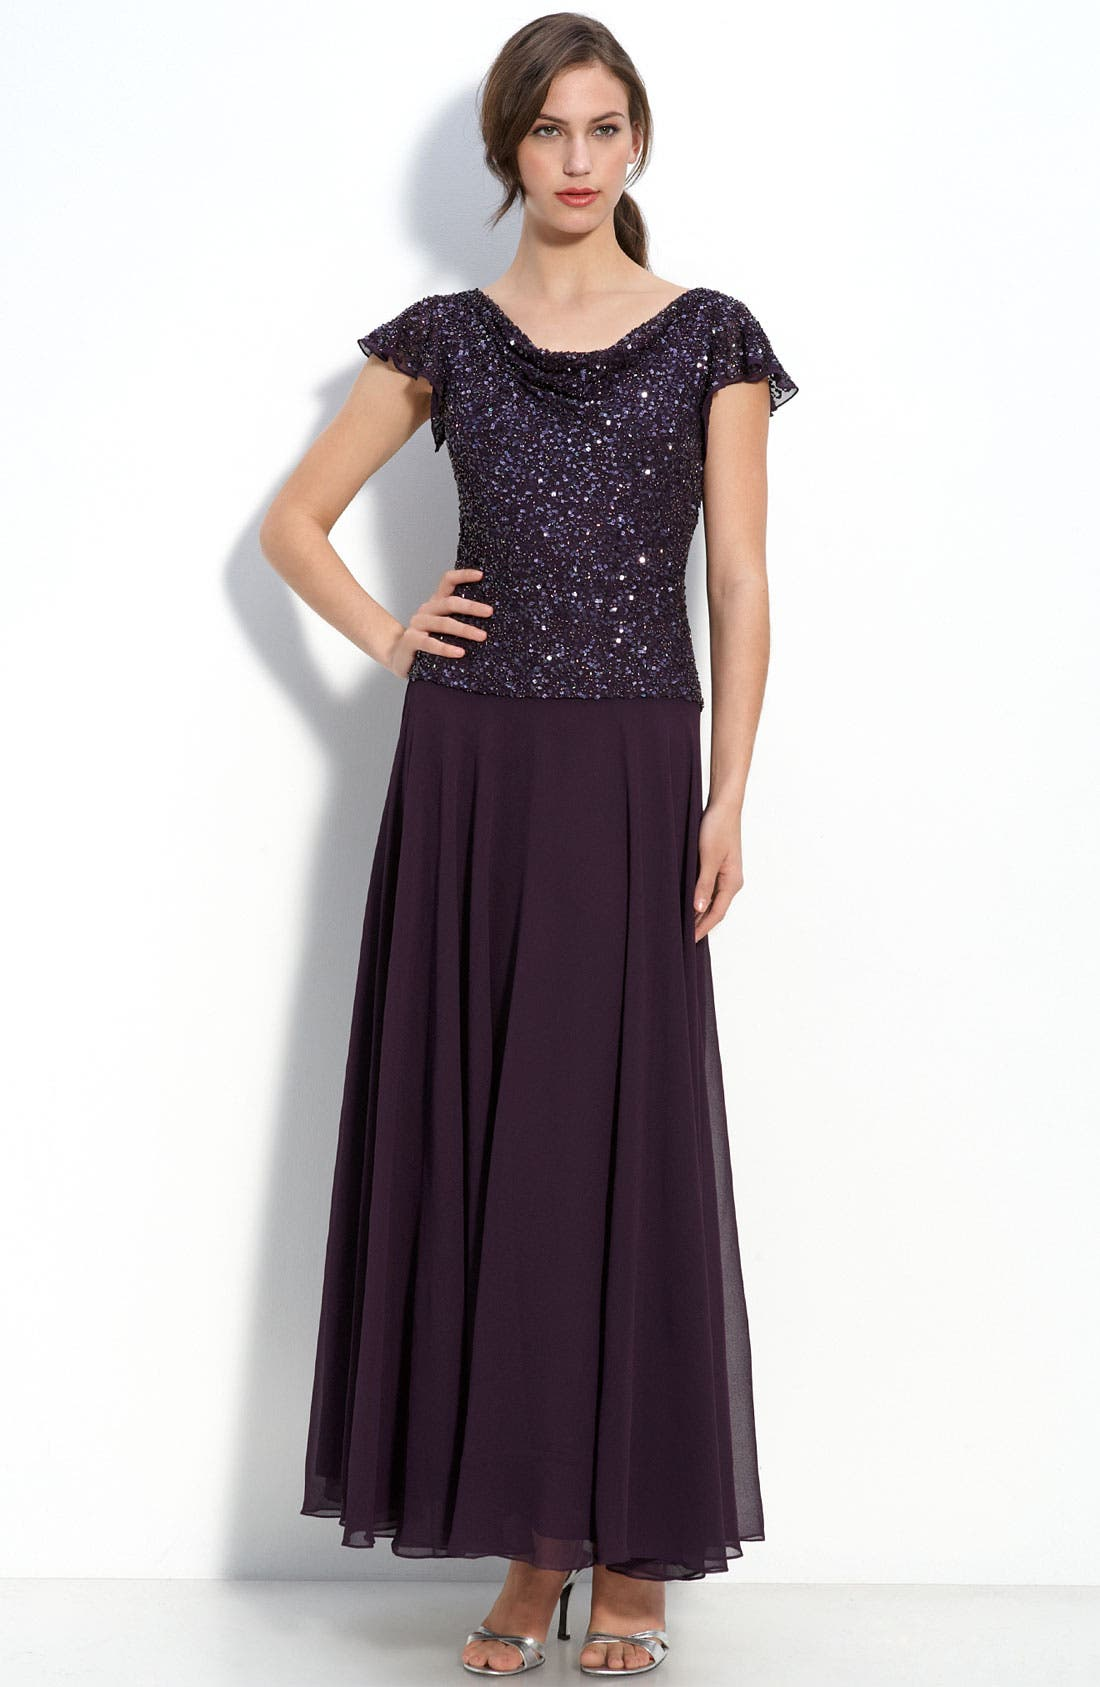 Alternate Image 1 Selected - J Kara Beaded Mock Two Piece Chiffon Dress